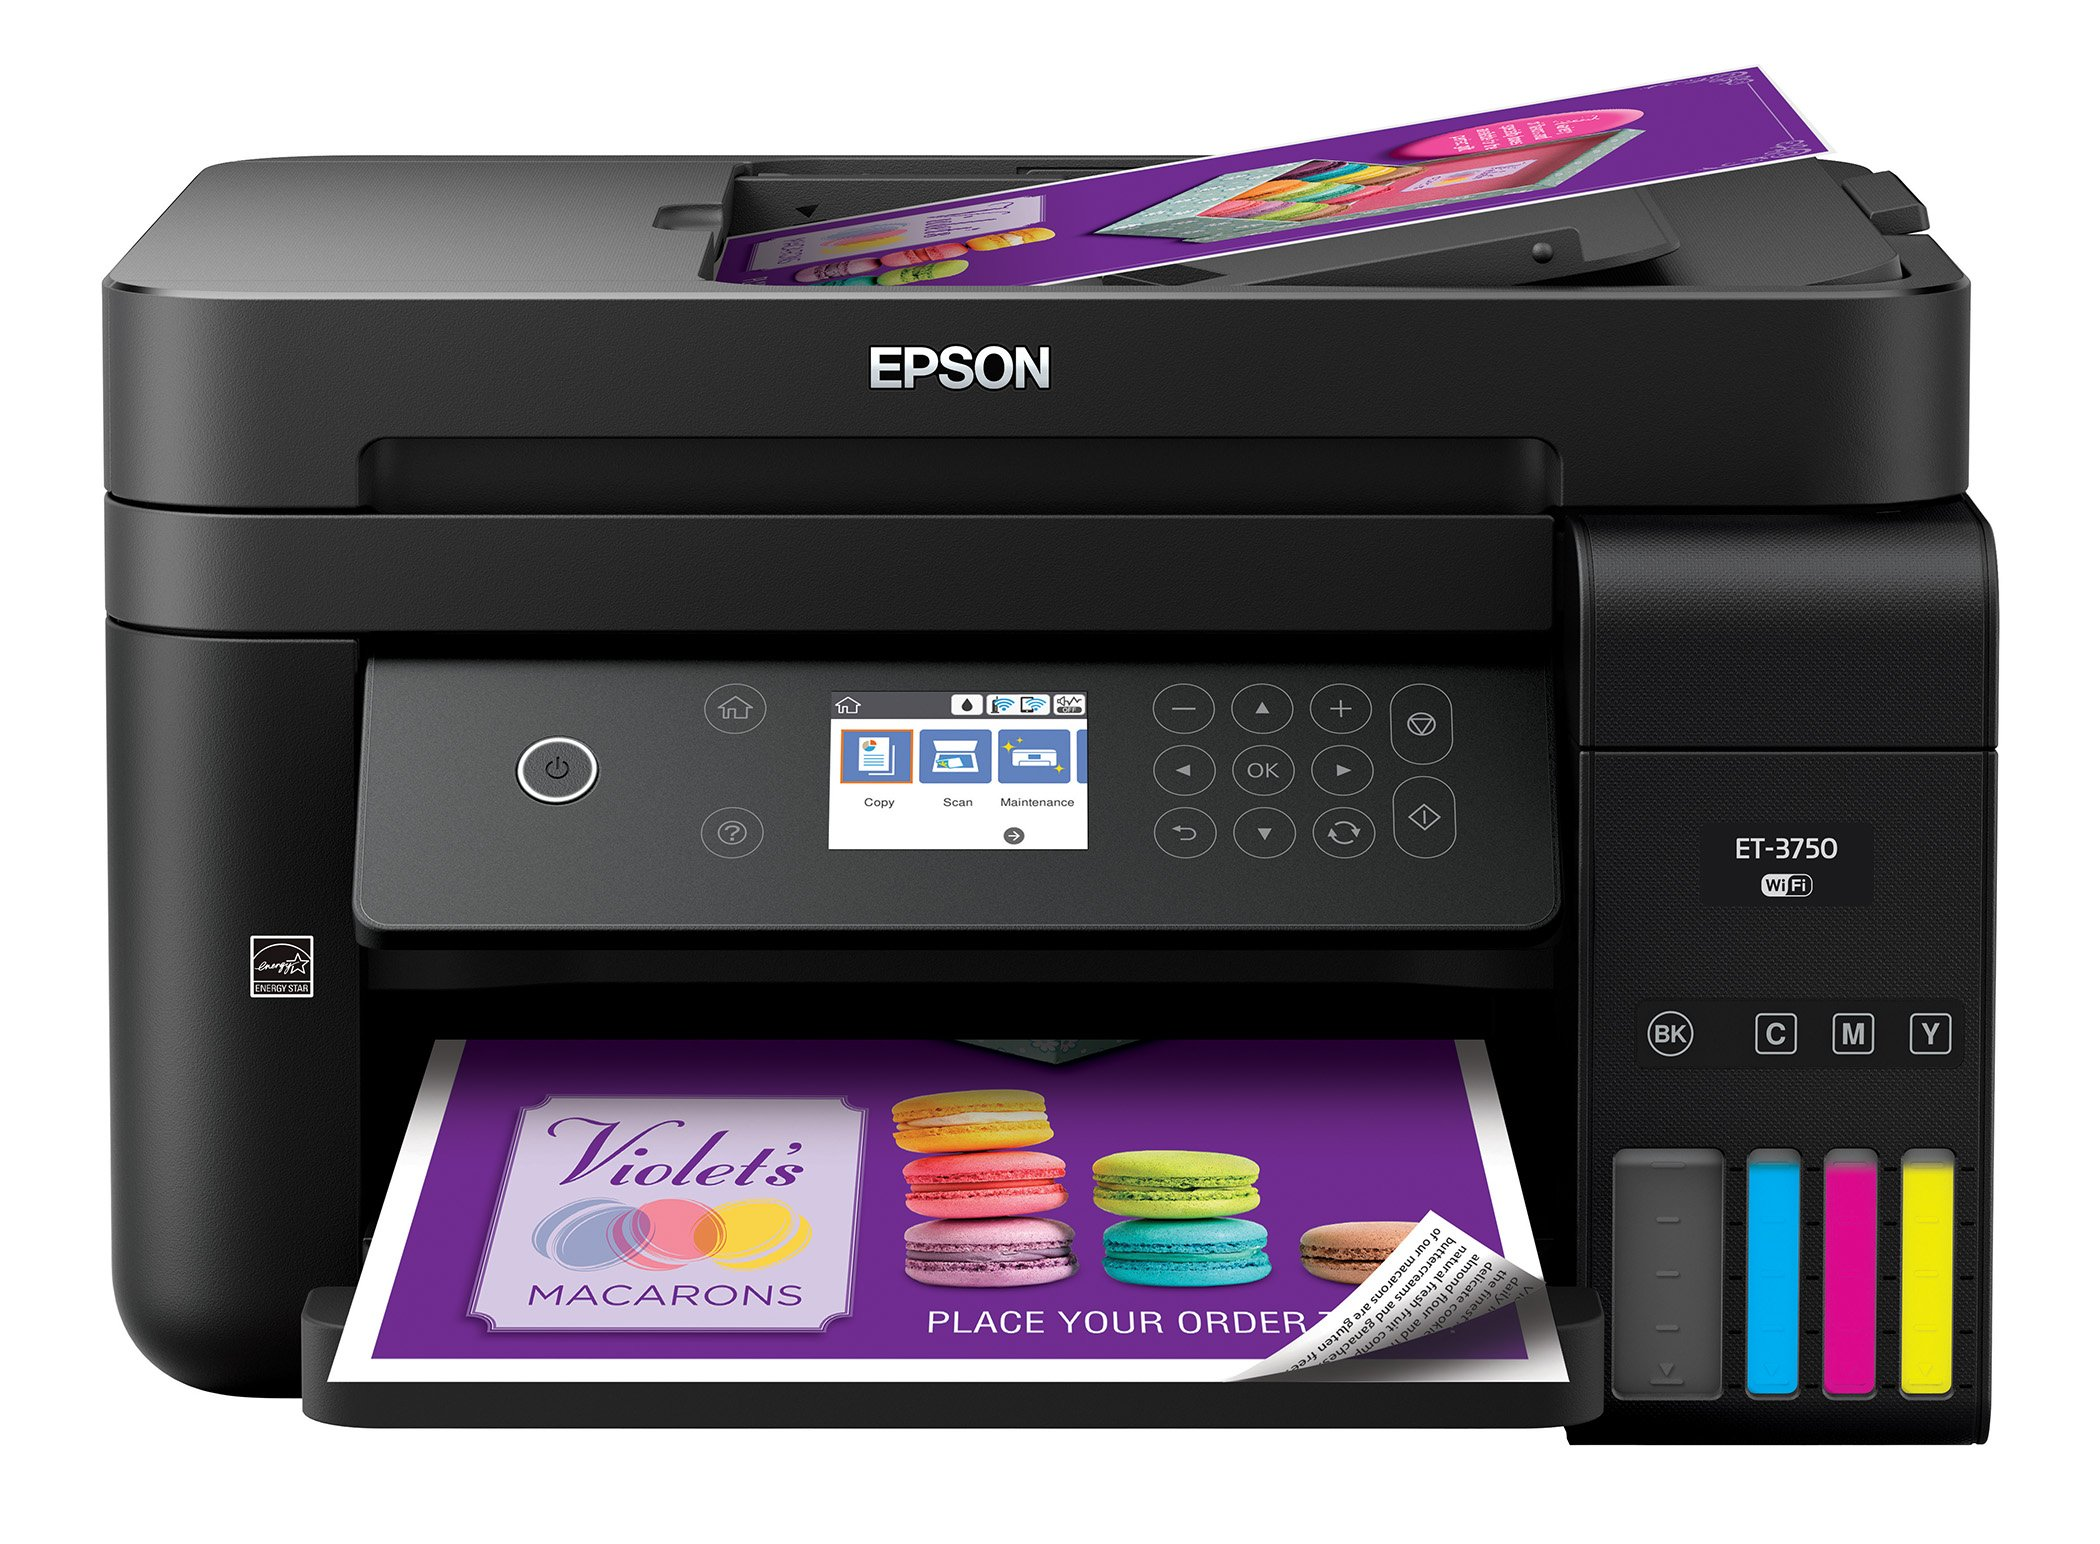 Epson Workforce ET-3750 EcoTank Wireless Color All-in-One Supertank Printer with Scanner, Copier and Ethernet (Renewed) by Epson (Image #1)